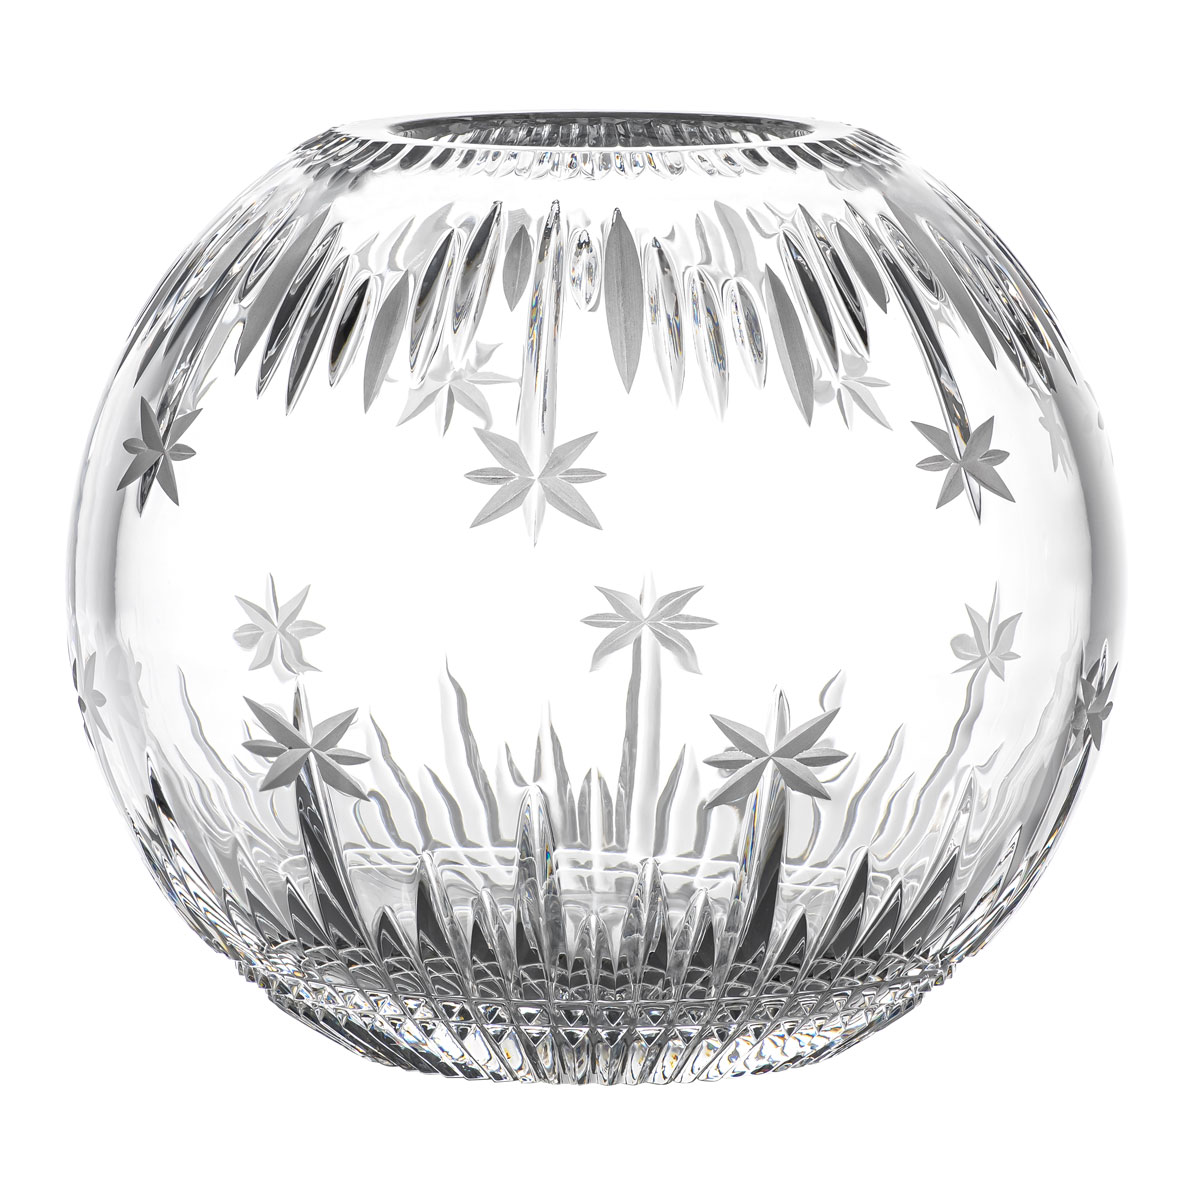 "Waterford Crystal 2021 Winter Wonders Rose Bowl 6"", Limited Edition"